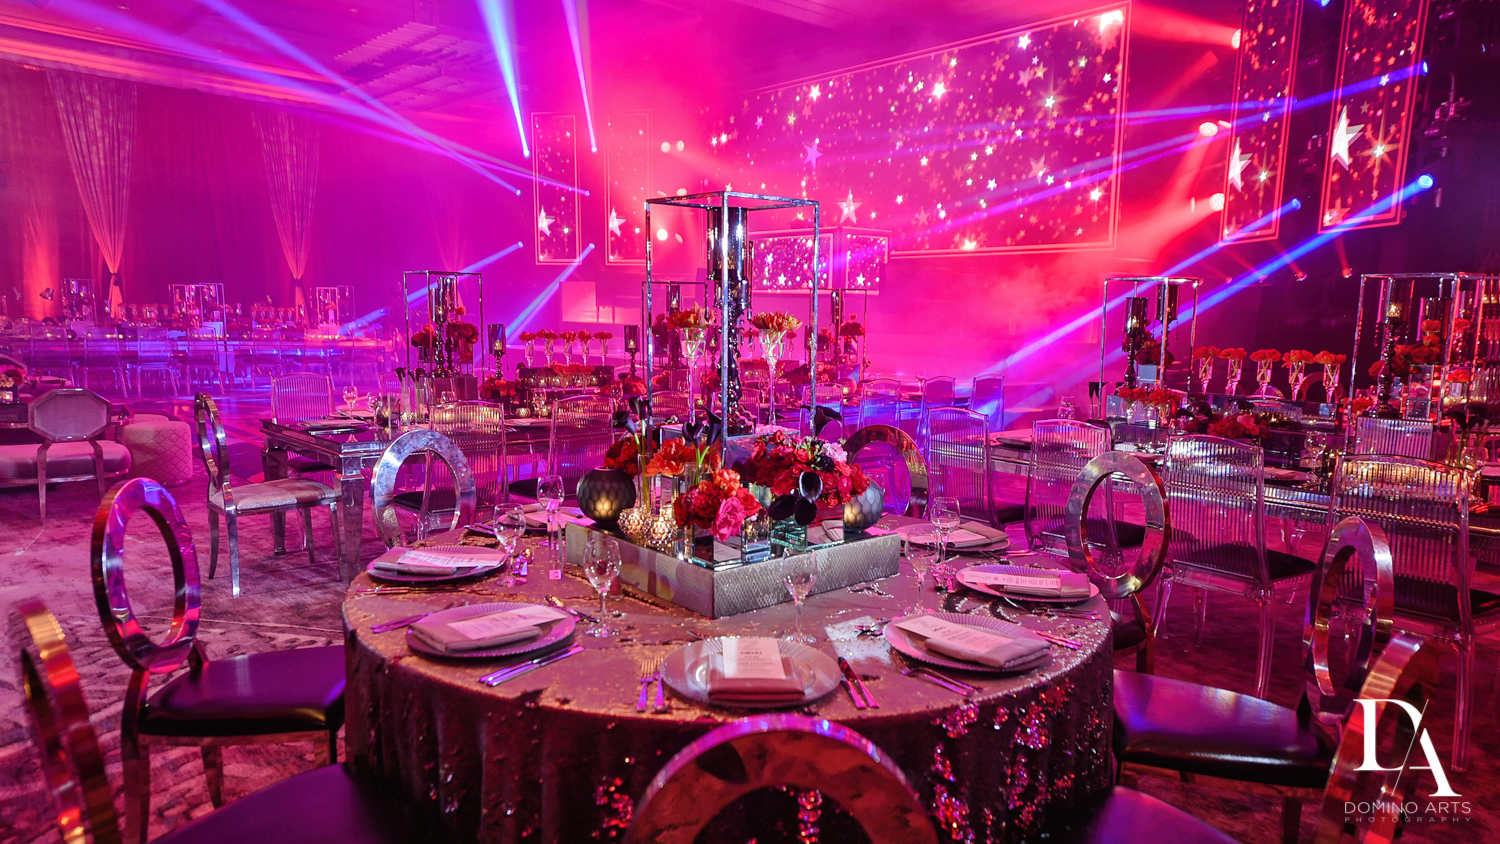 table setting at Luxury Celebrity Bat Mitzvah at Four Seasons Hotel Miami by Domino Arts Photography